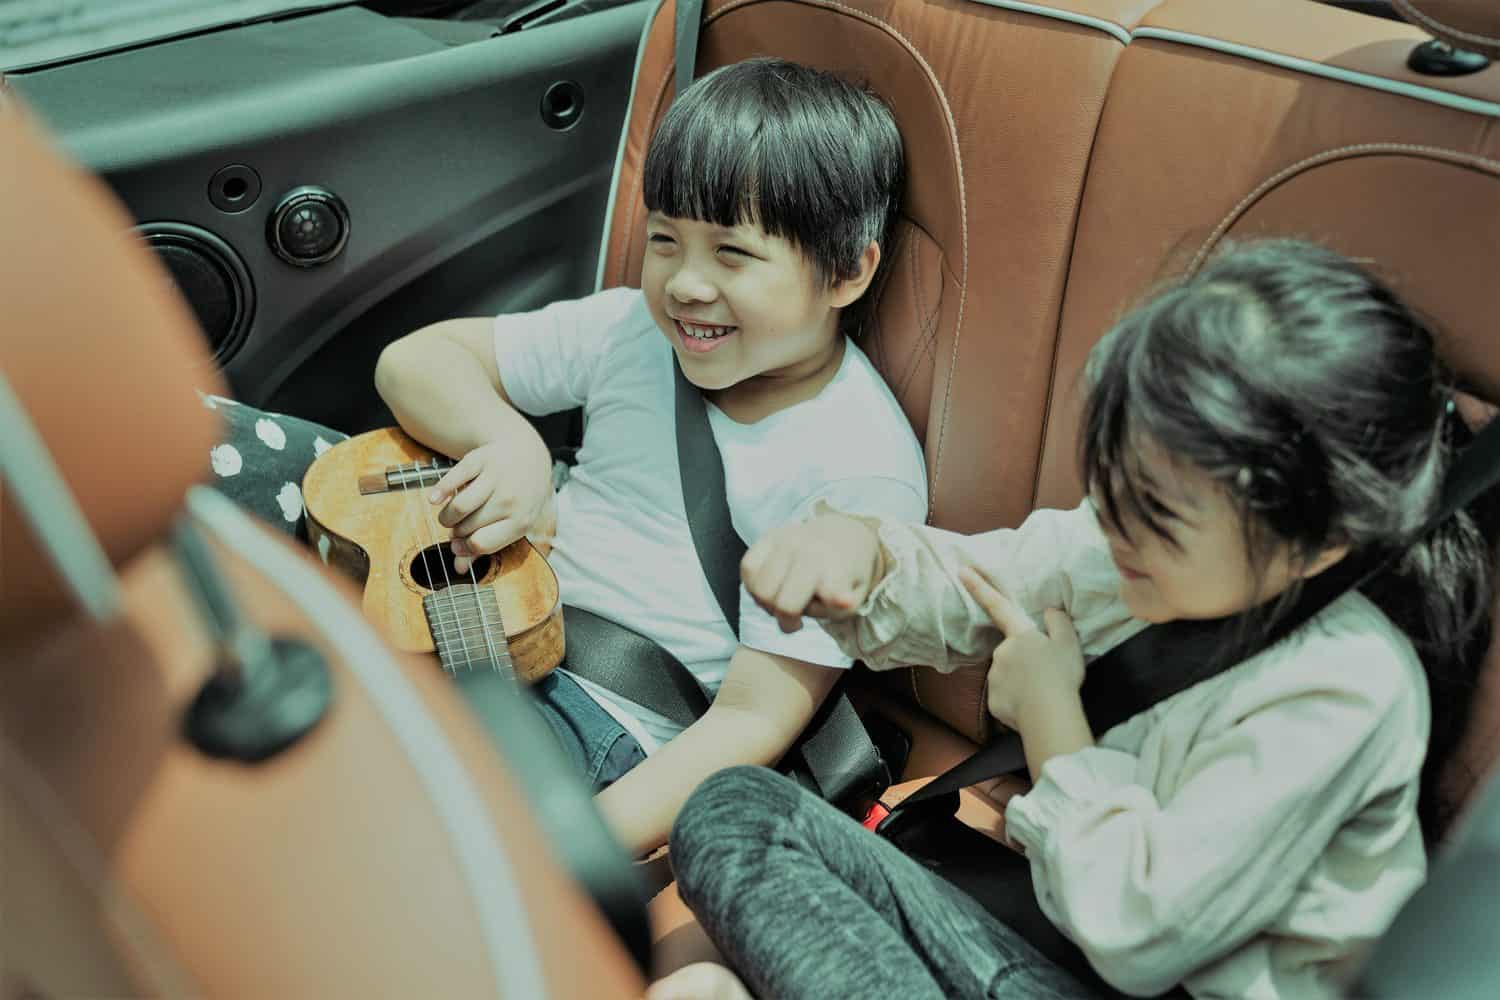 2 siblings sitting in a care with seat belts